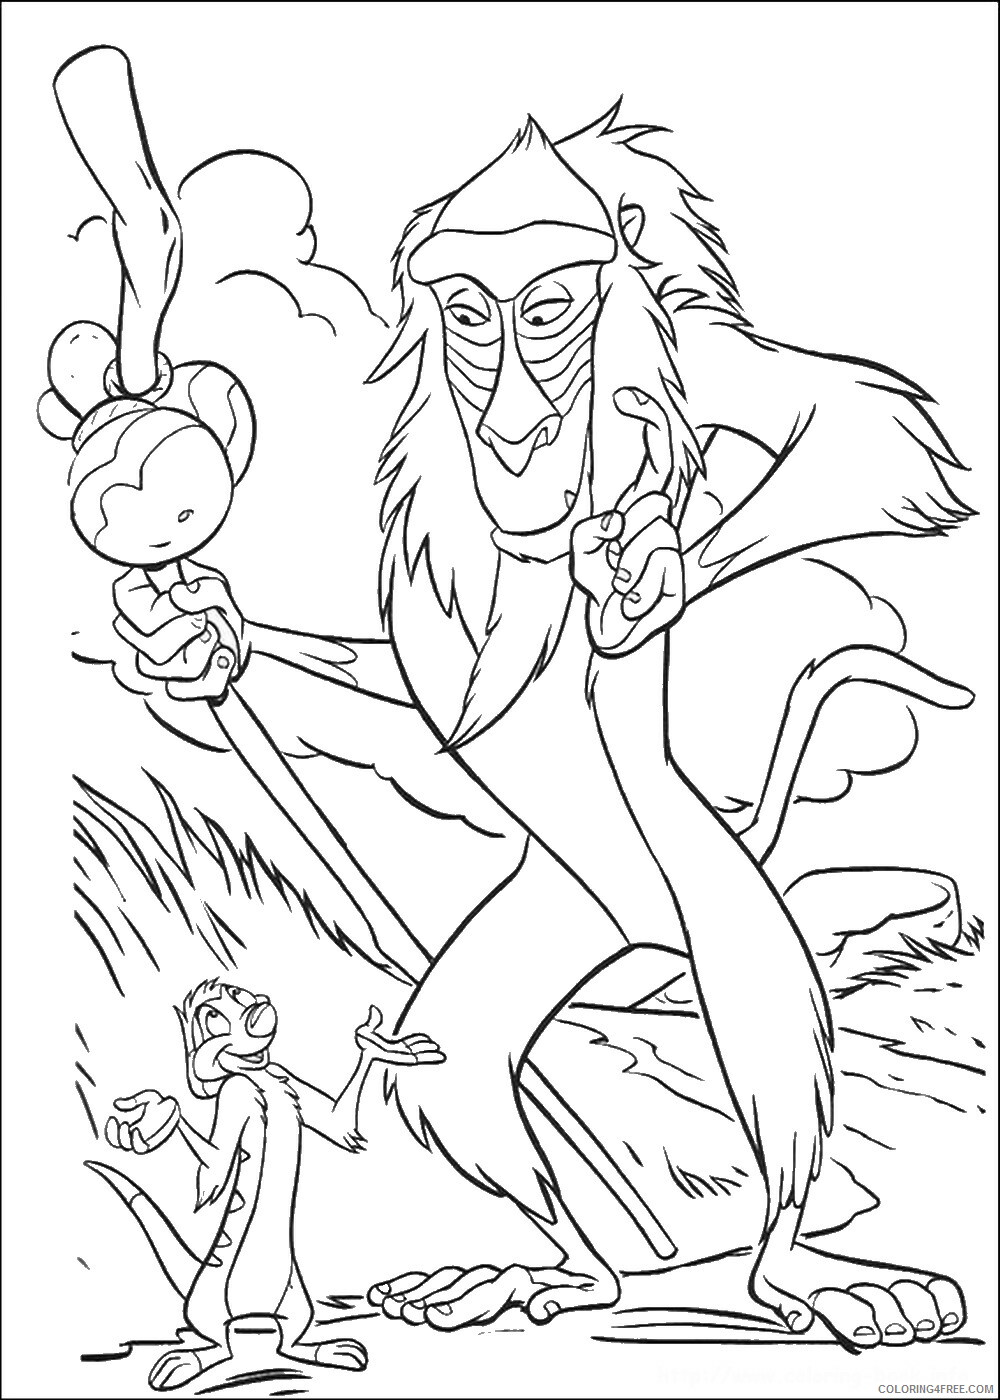 The Lion King Coloring Pages TV Film lionking_39 Printable 2020 09163 Coloring4free